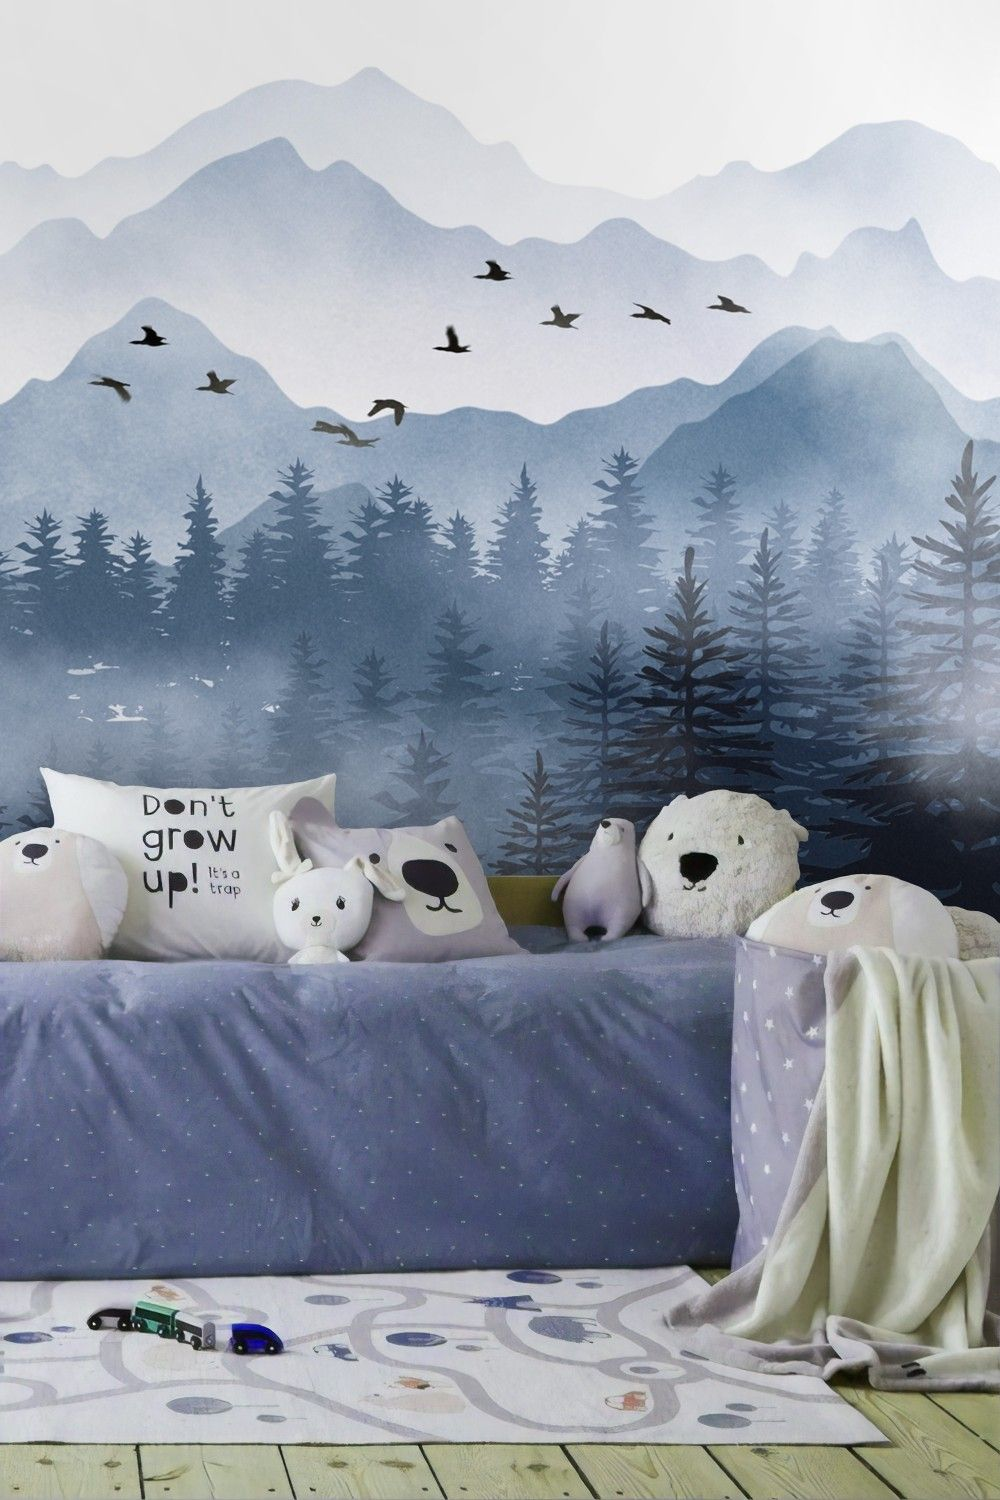 Photo of Monochrome Mountainscape with Misty Forest Wallpaper Mural